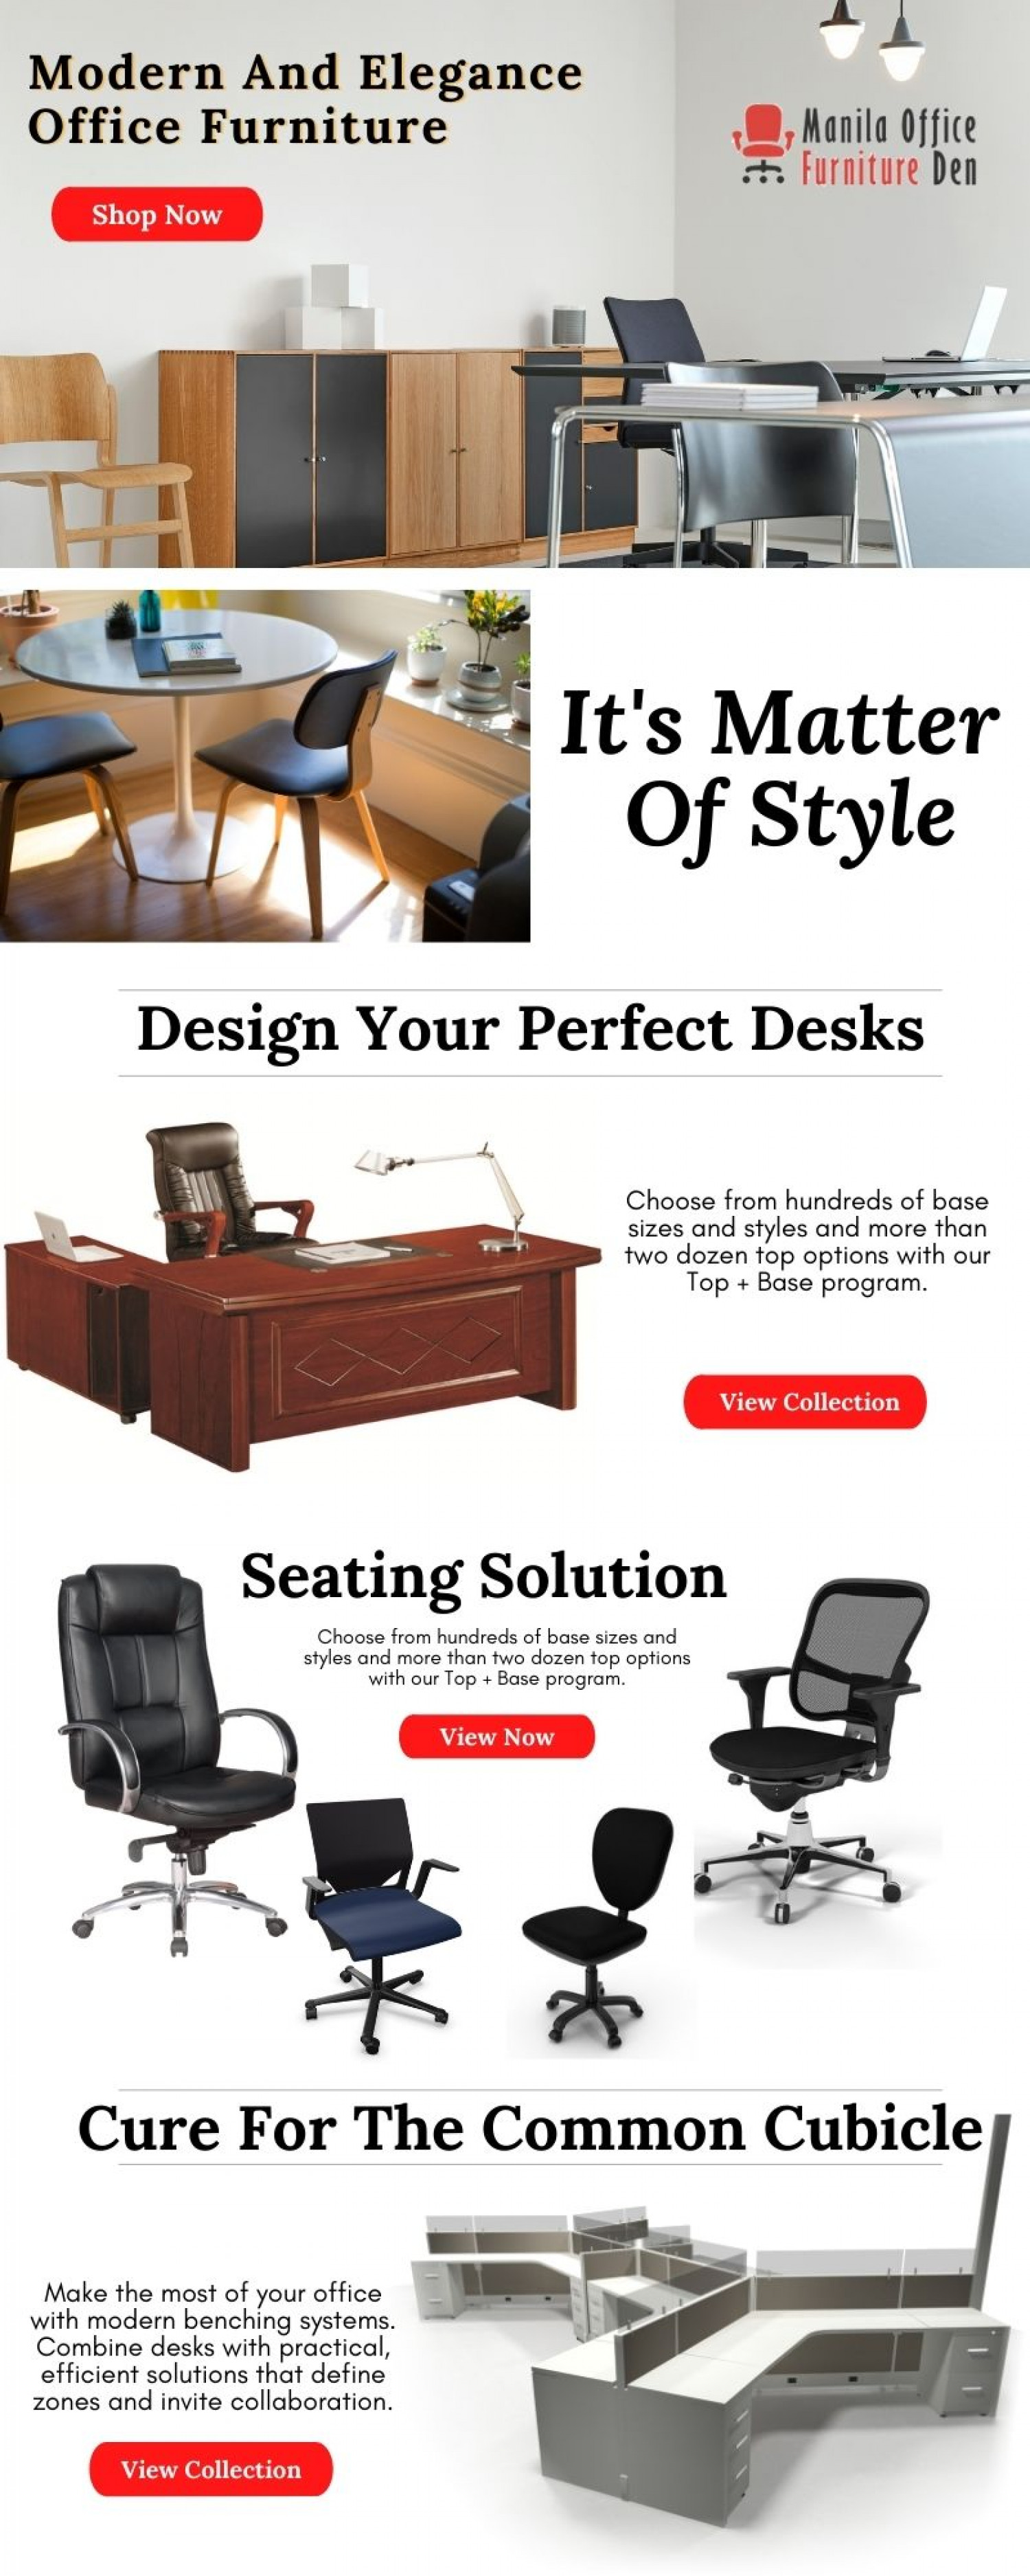 Modern And Elegance office Furniture Infographic